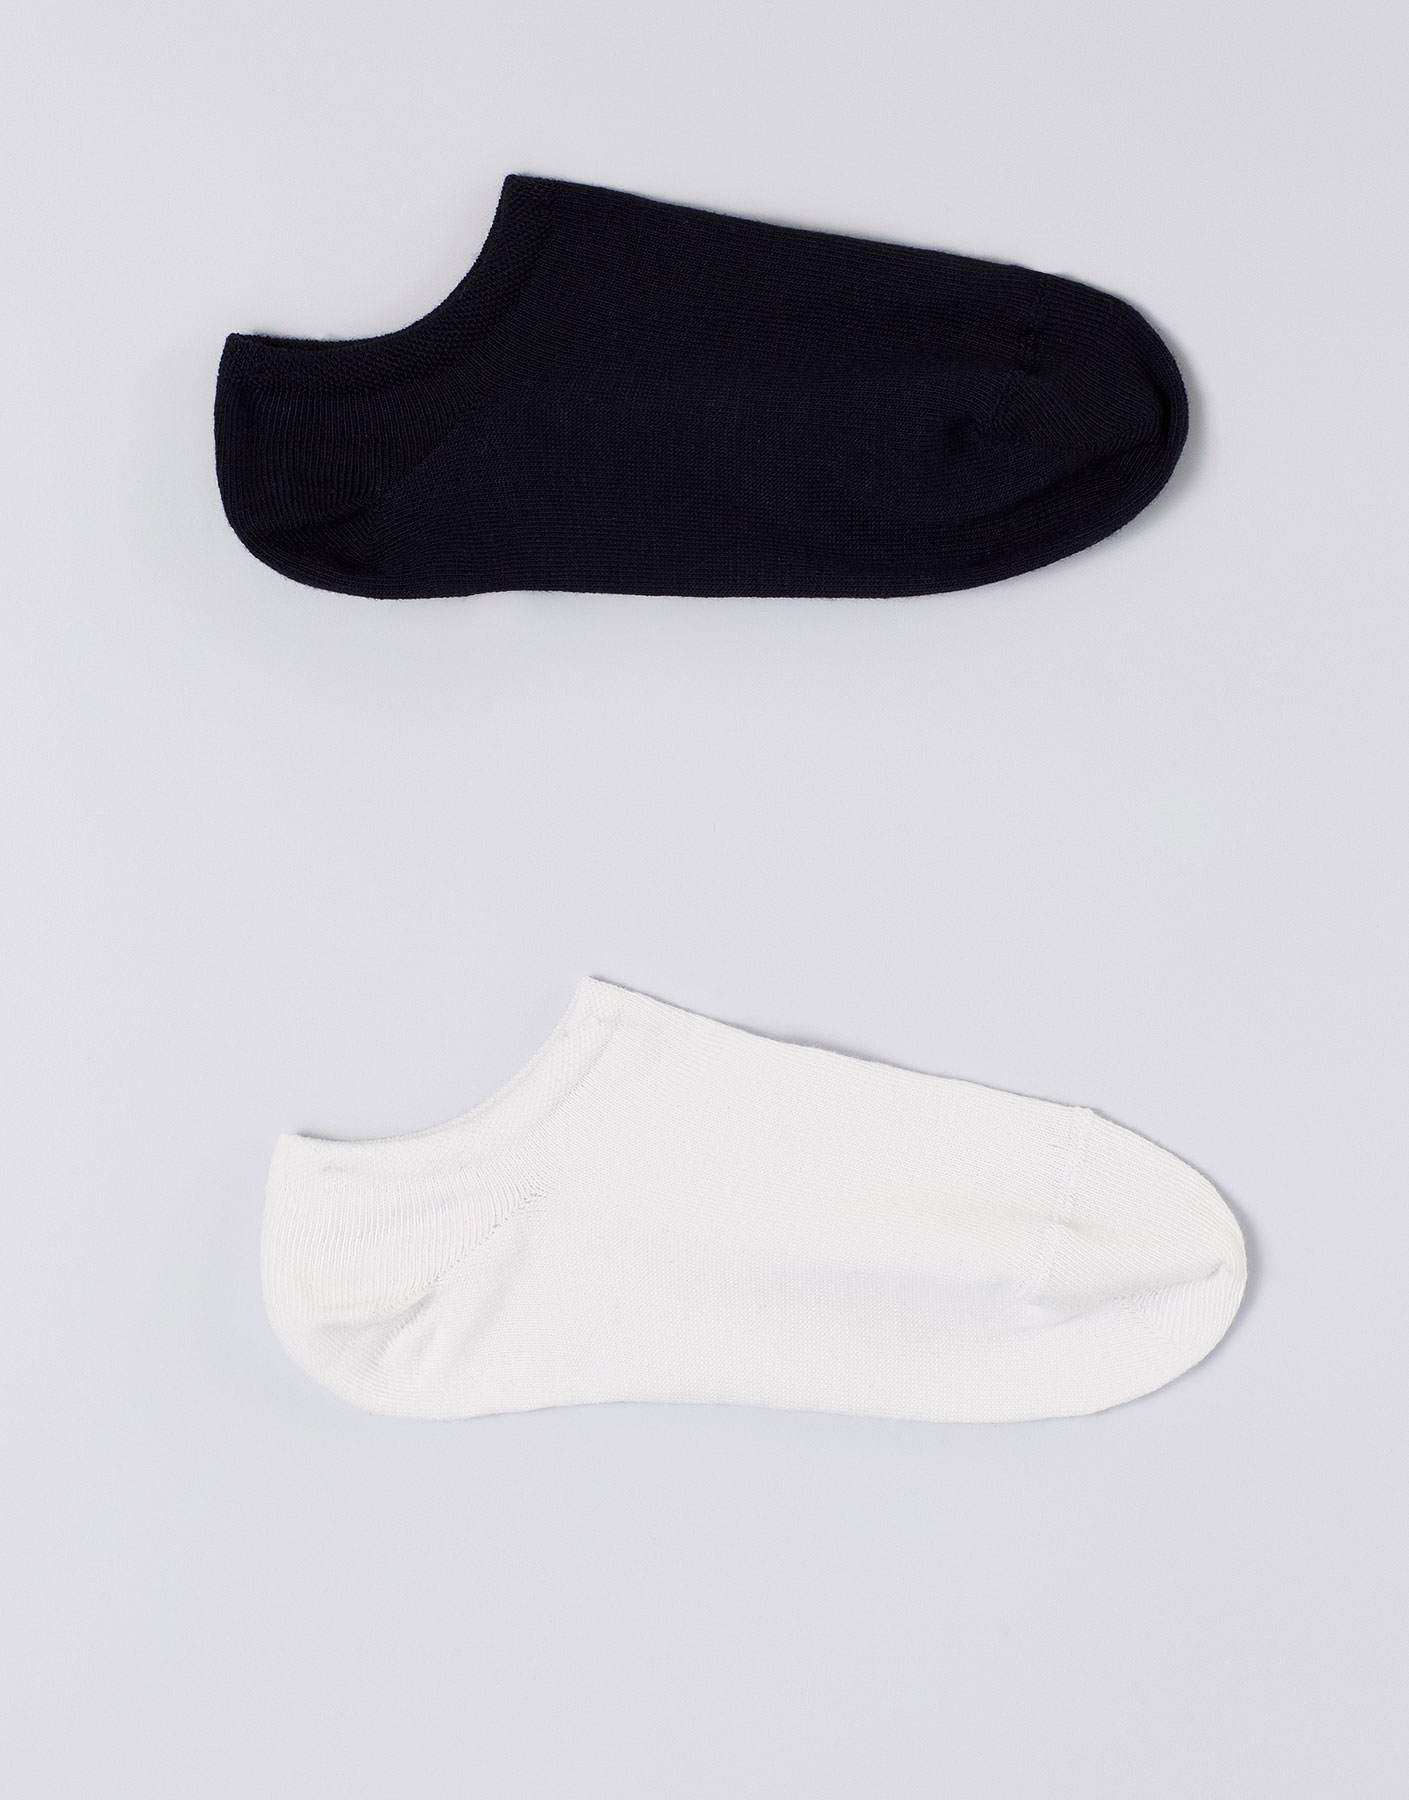 Pack of 2 invisible socks